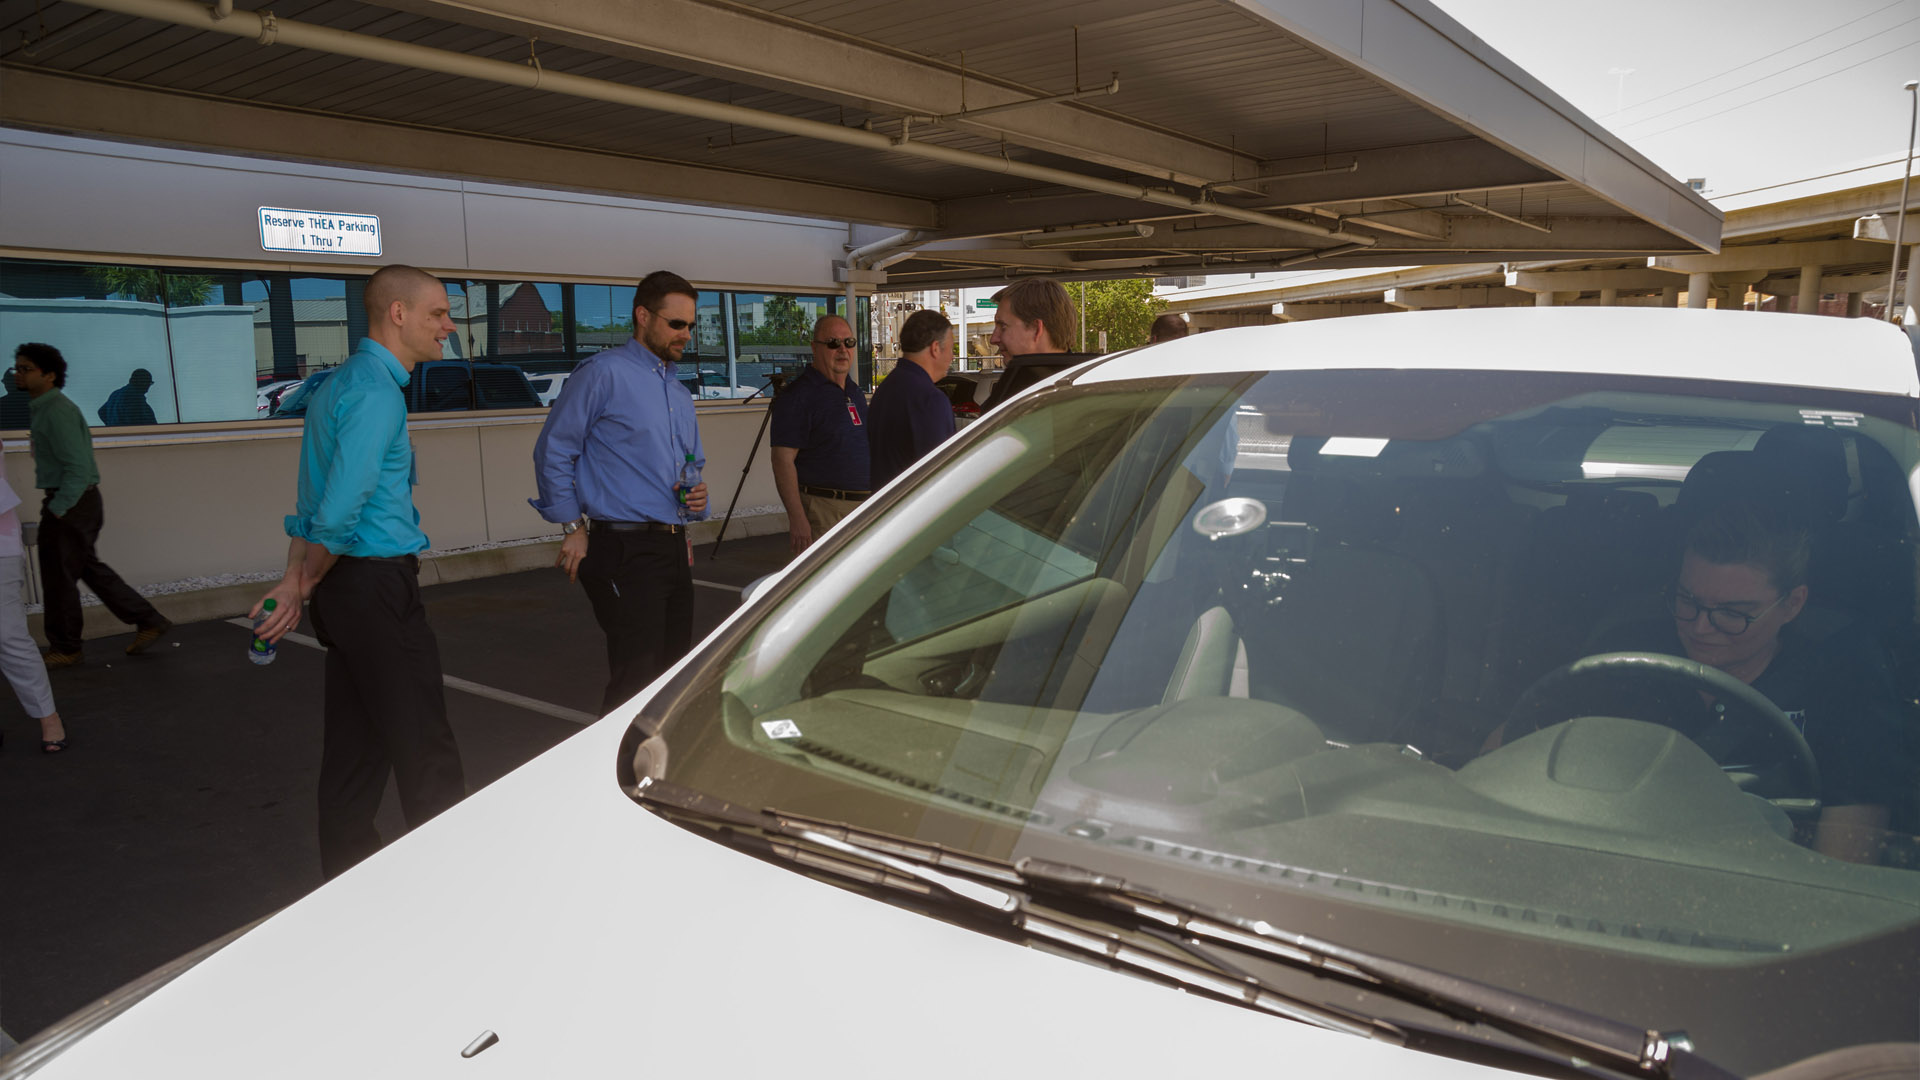 Global-5 hosts state transportation officials at connected vehicle demonstration